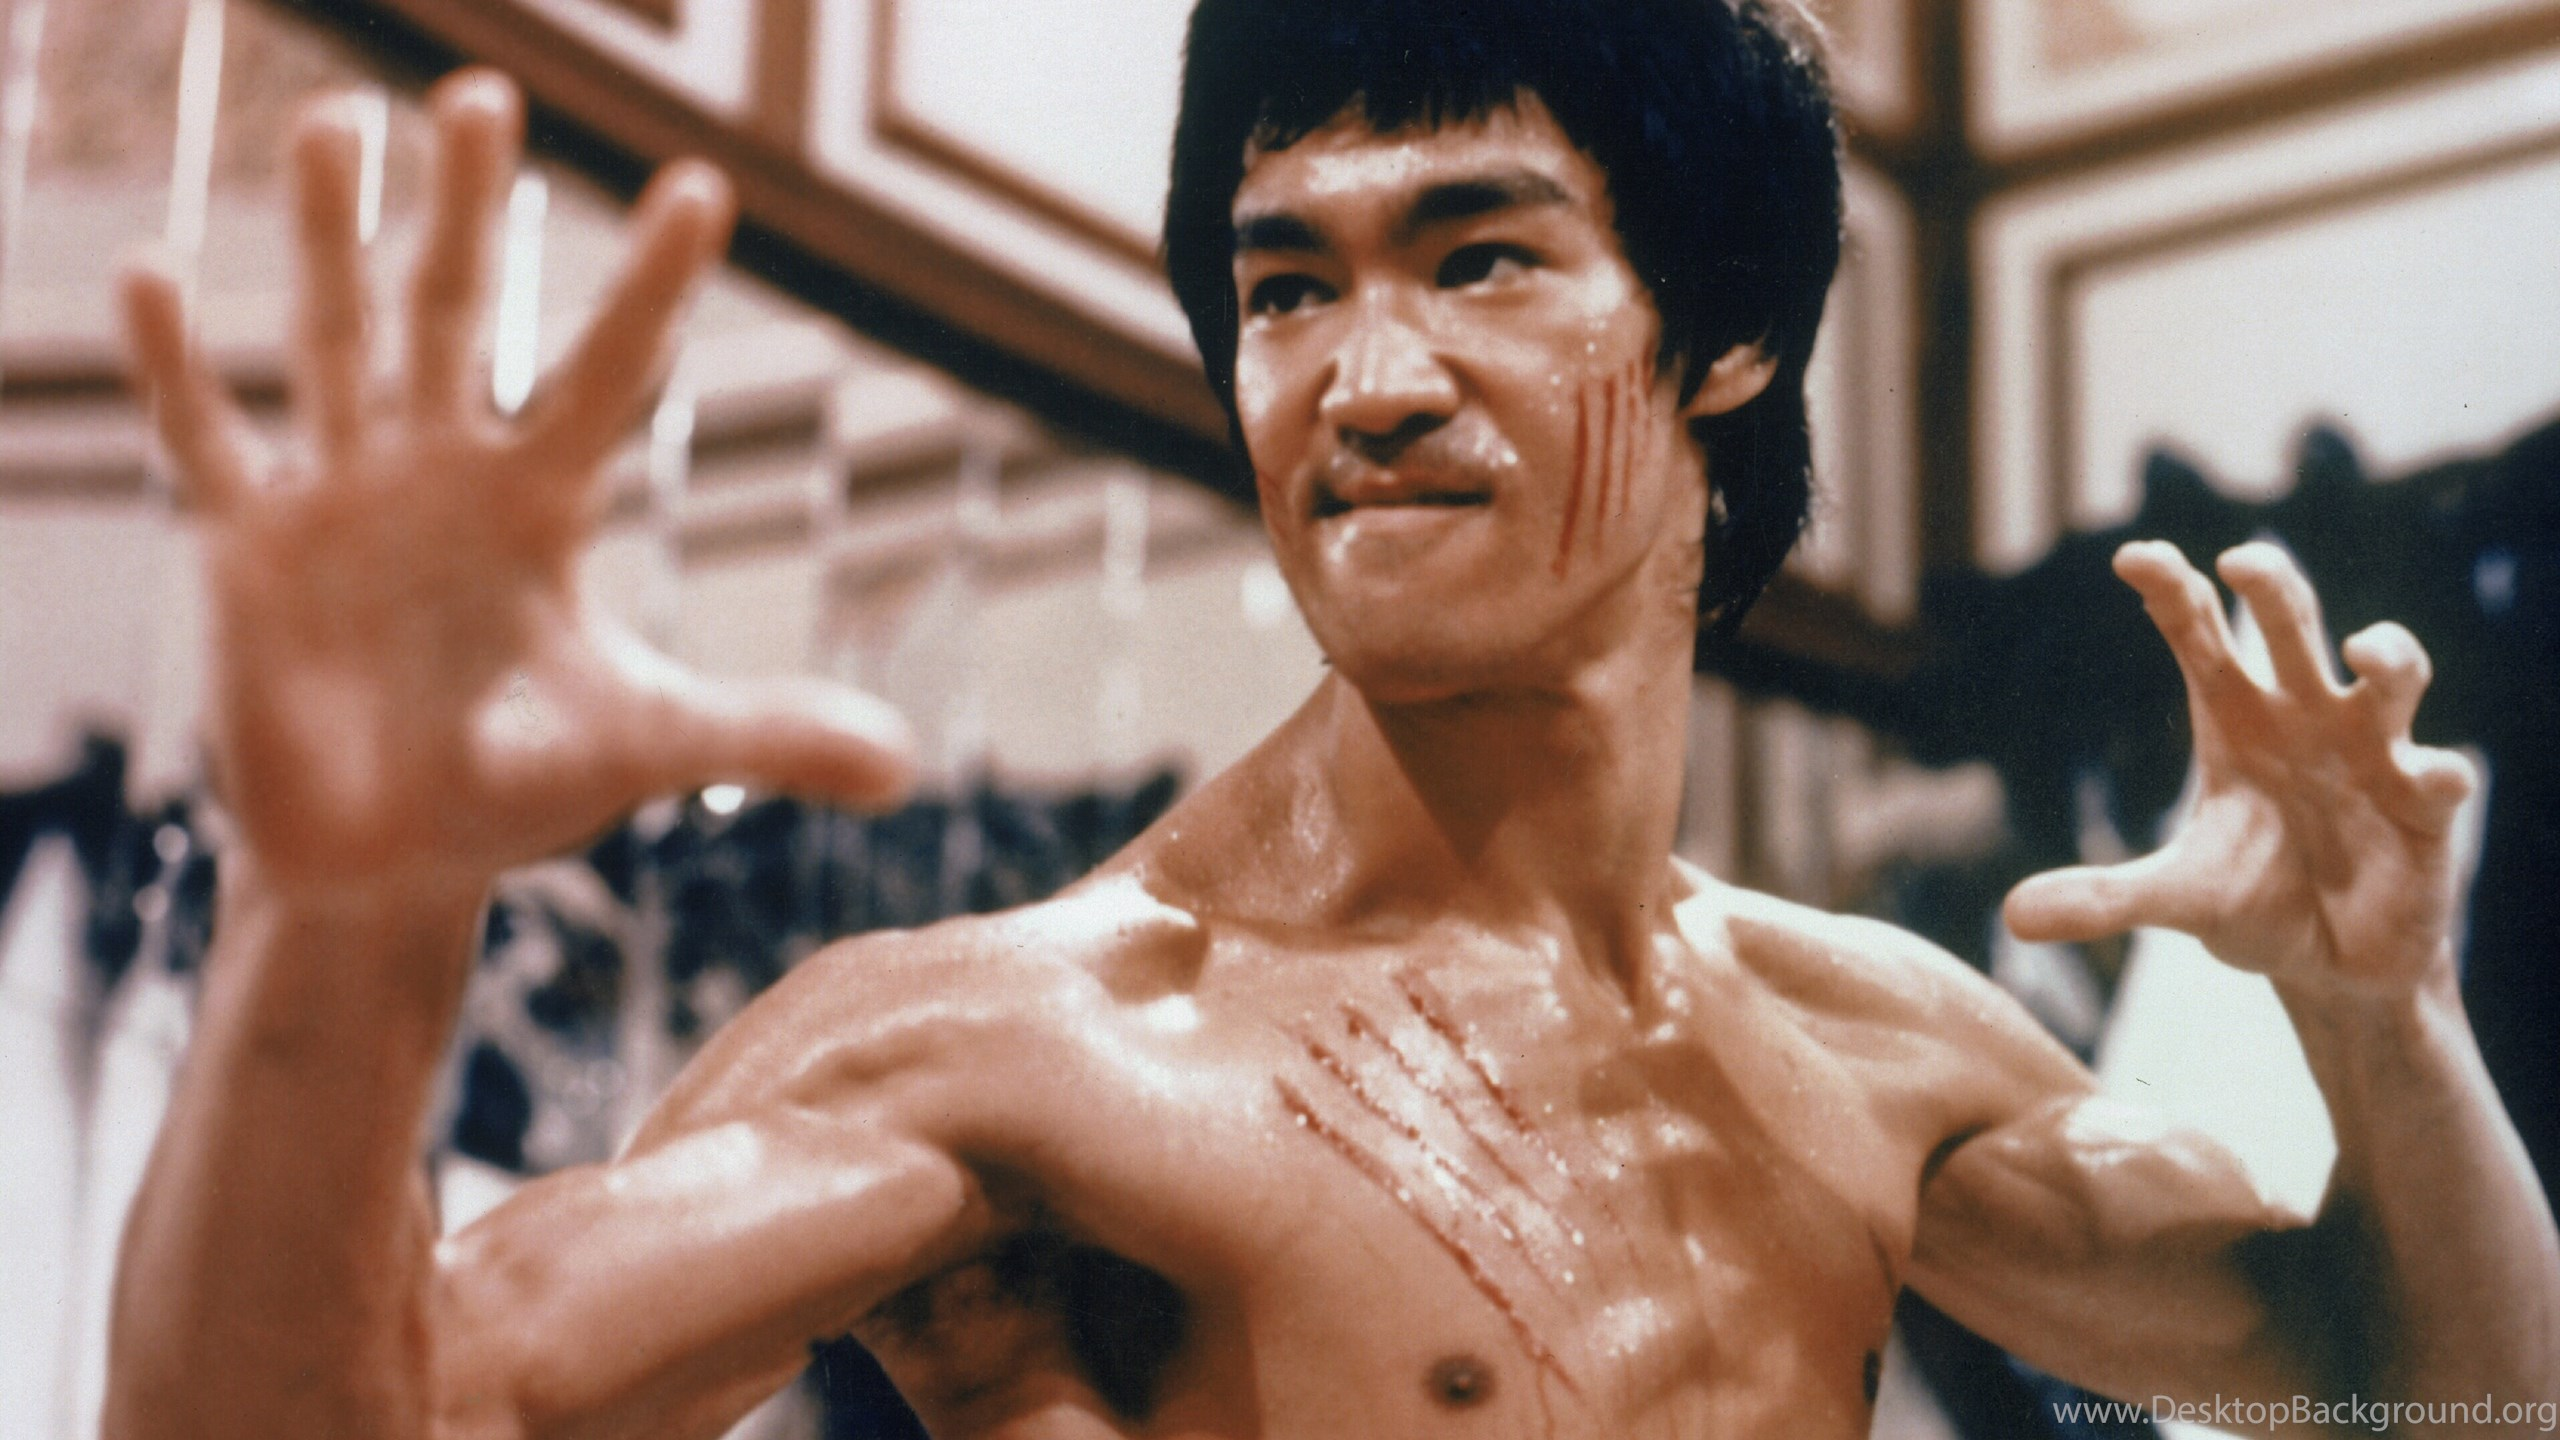 Beautiful Wallpaper Movie Warrior - 483925_enter-the-dragon-bruce-lee-martial-arts-movie-warrior-r-wallpapers_3826x3000_h  Best Photo Reference_619864.jpg